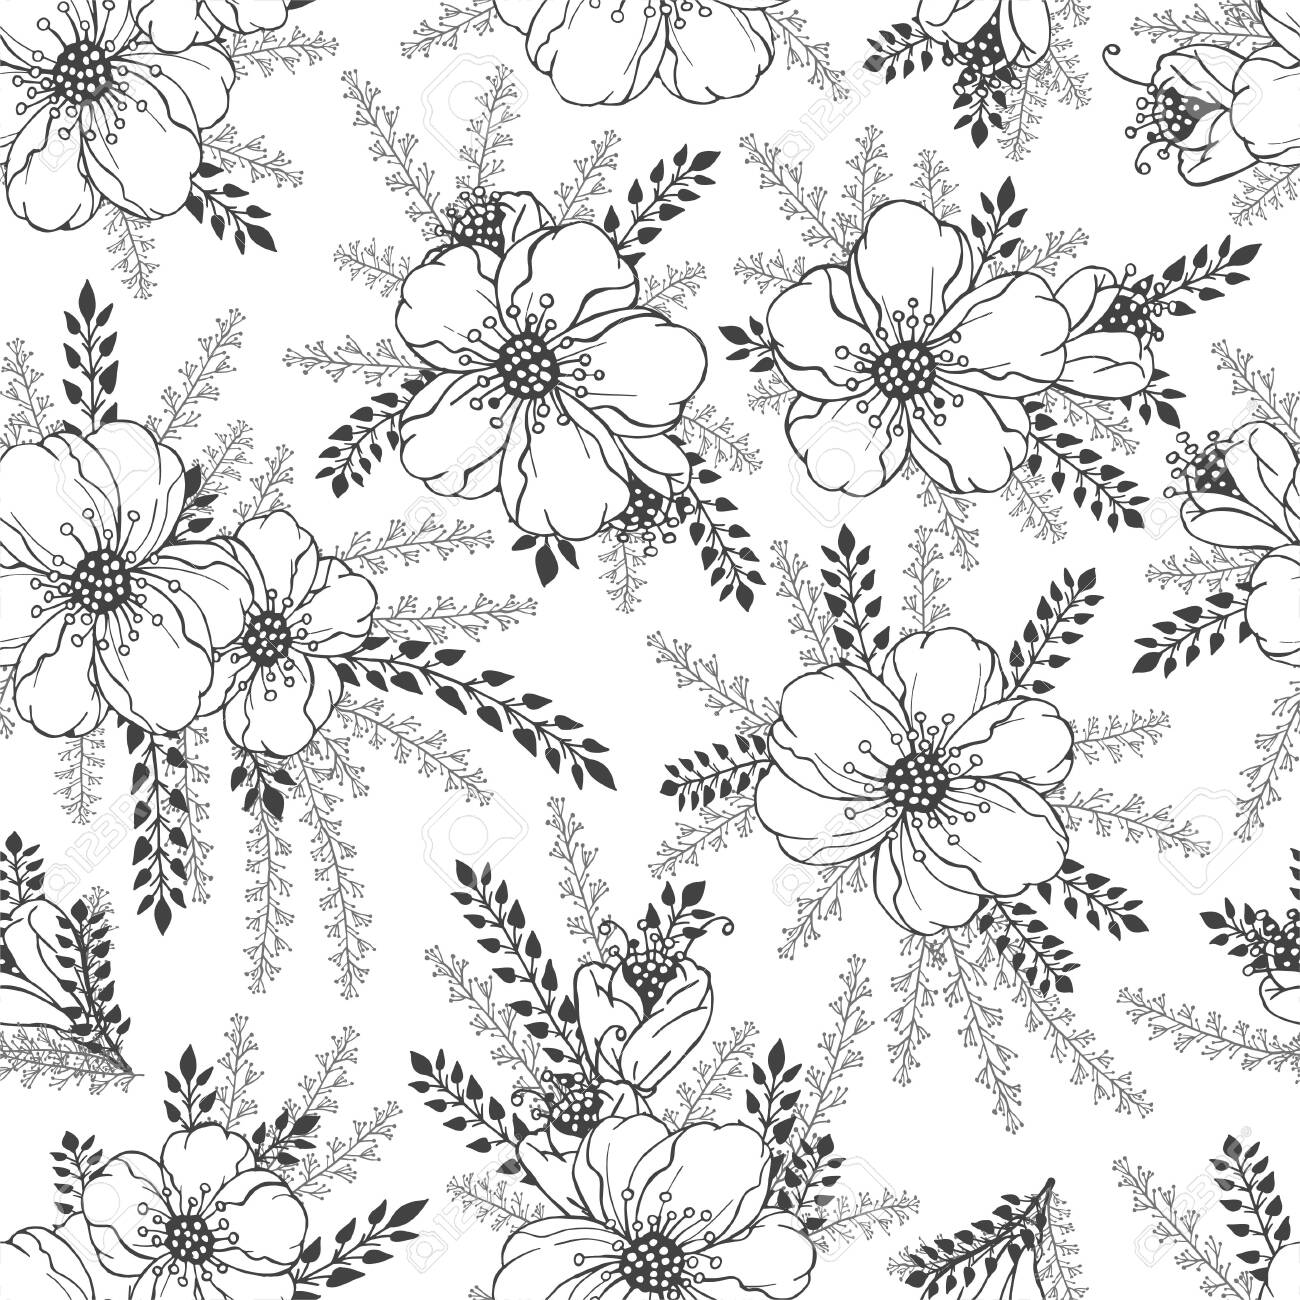 Vector seamless pattern with hand drawn flowers. Floral monochrome backgrounds. - 151784951